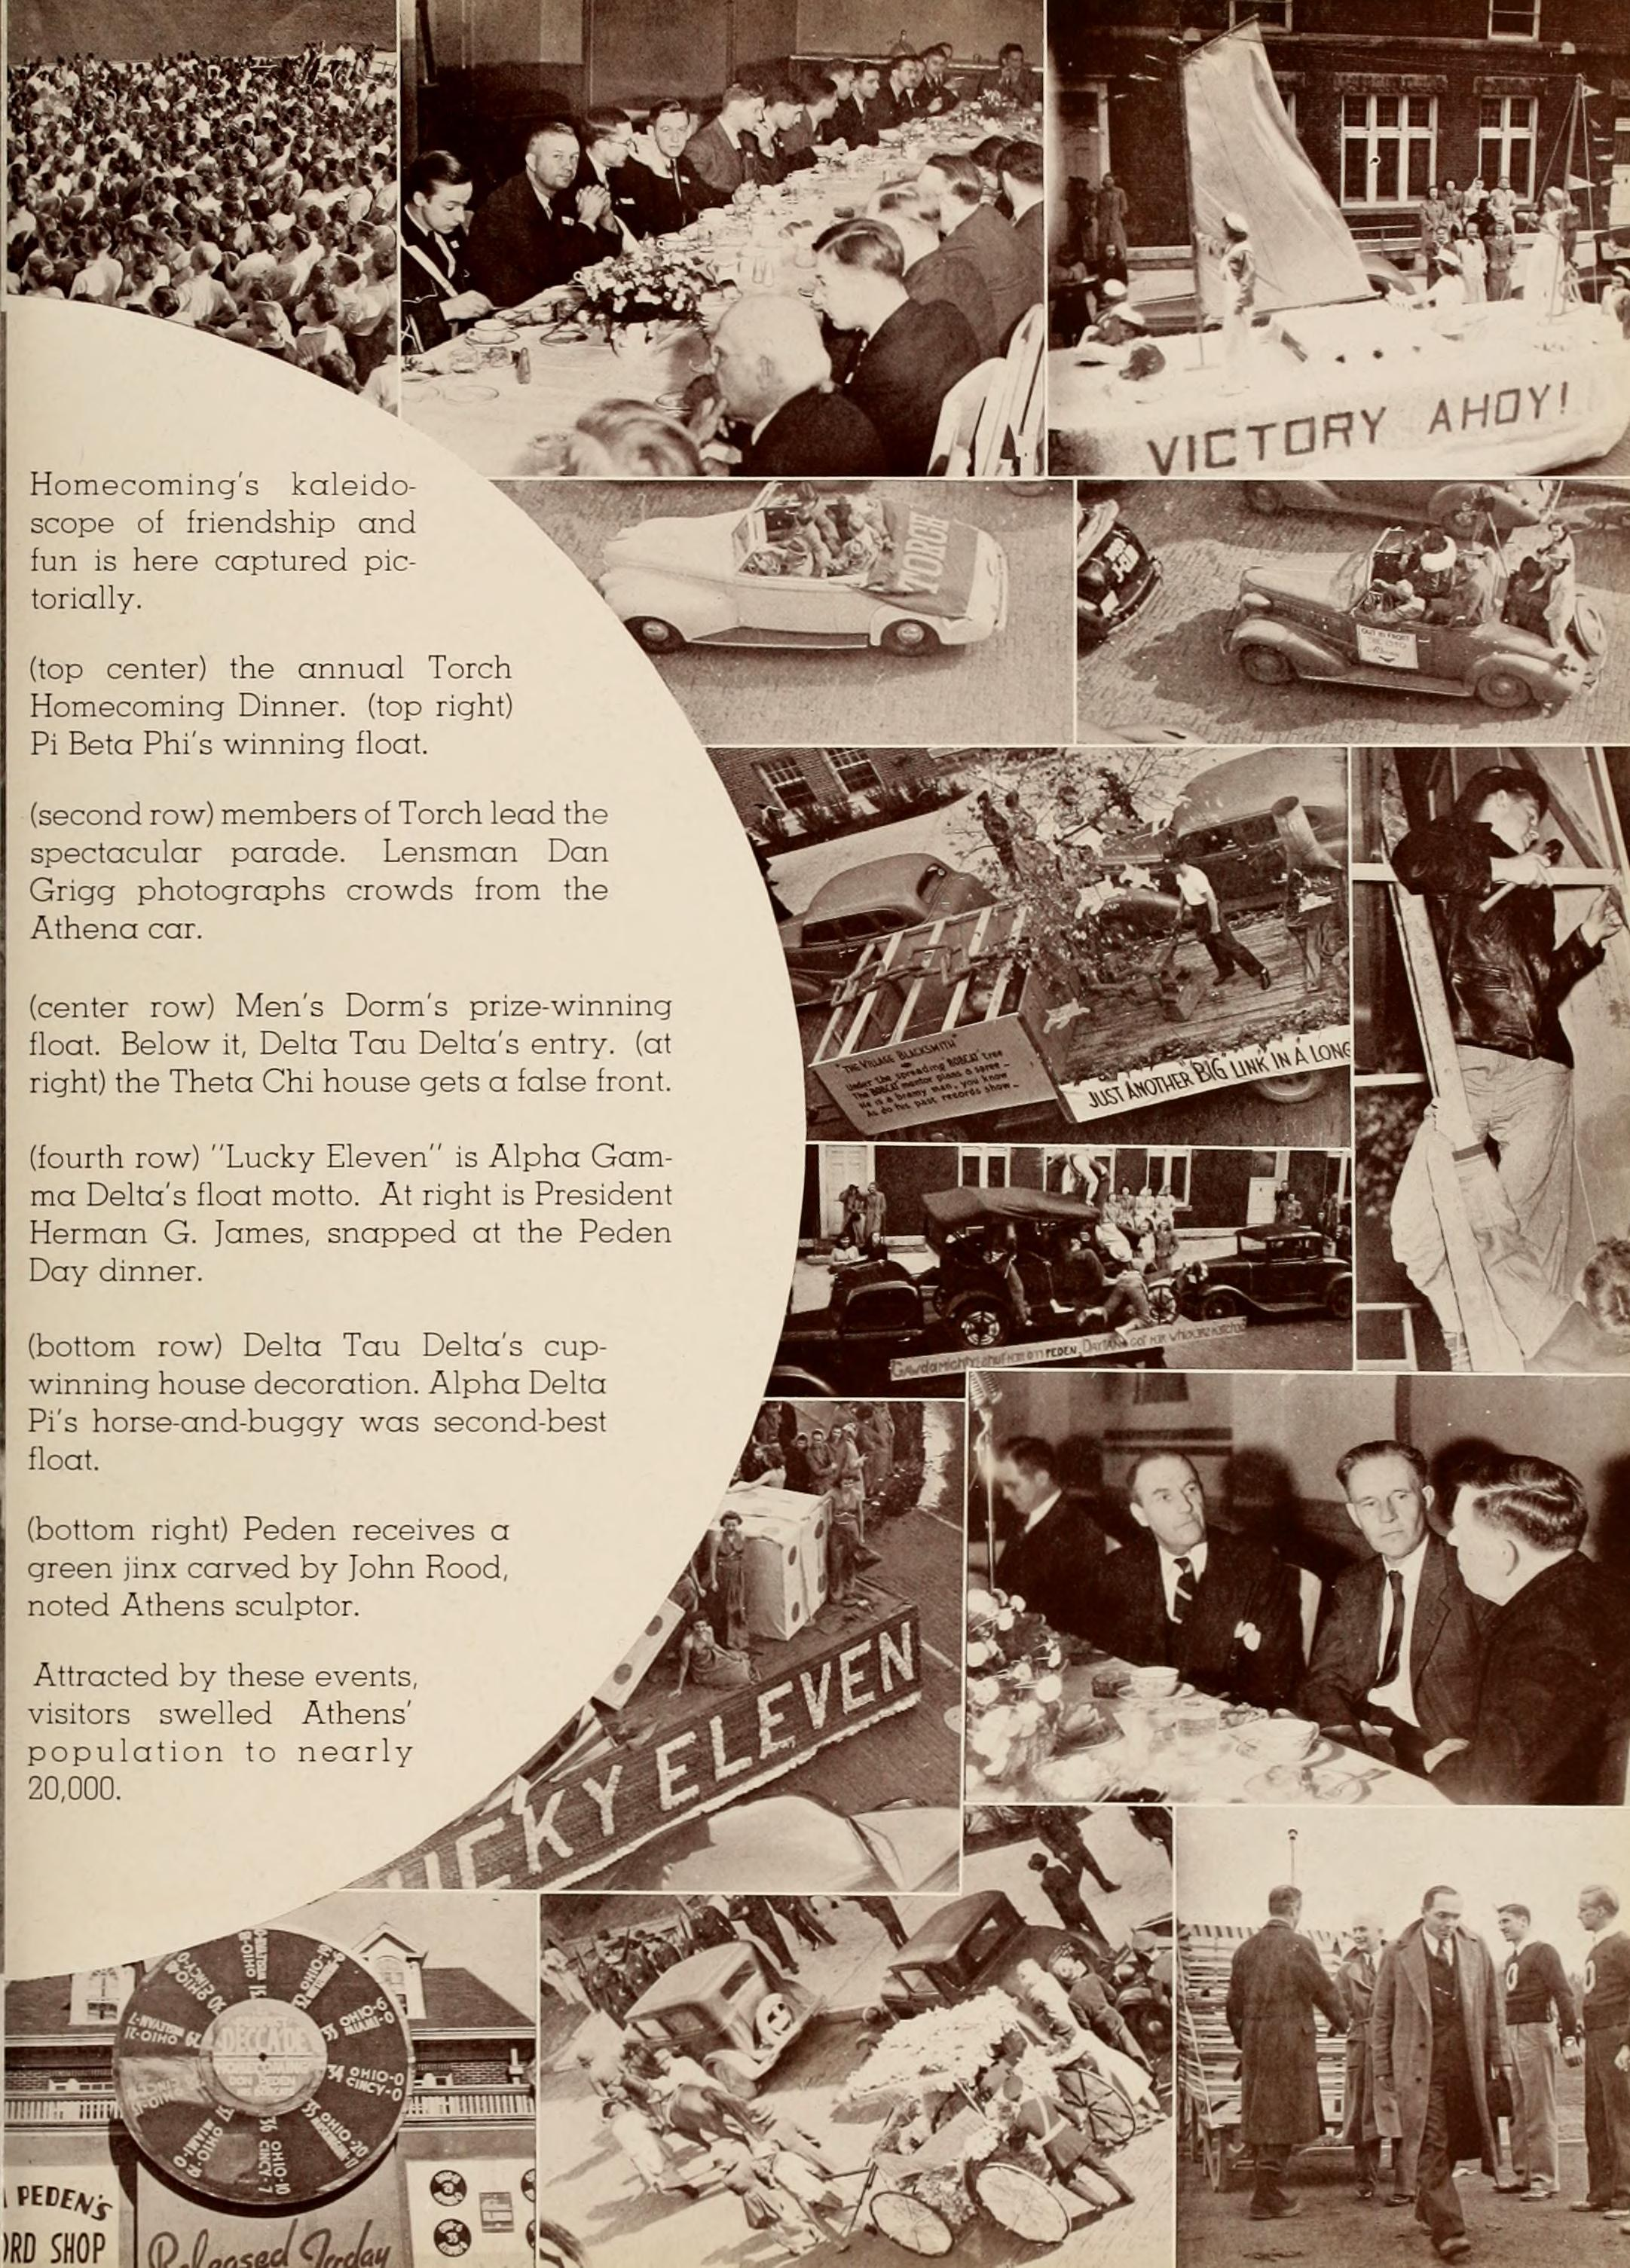 Athena Yearbook 1940, 1939 Homecoming